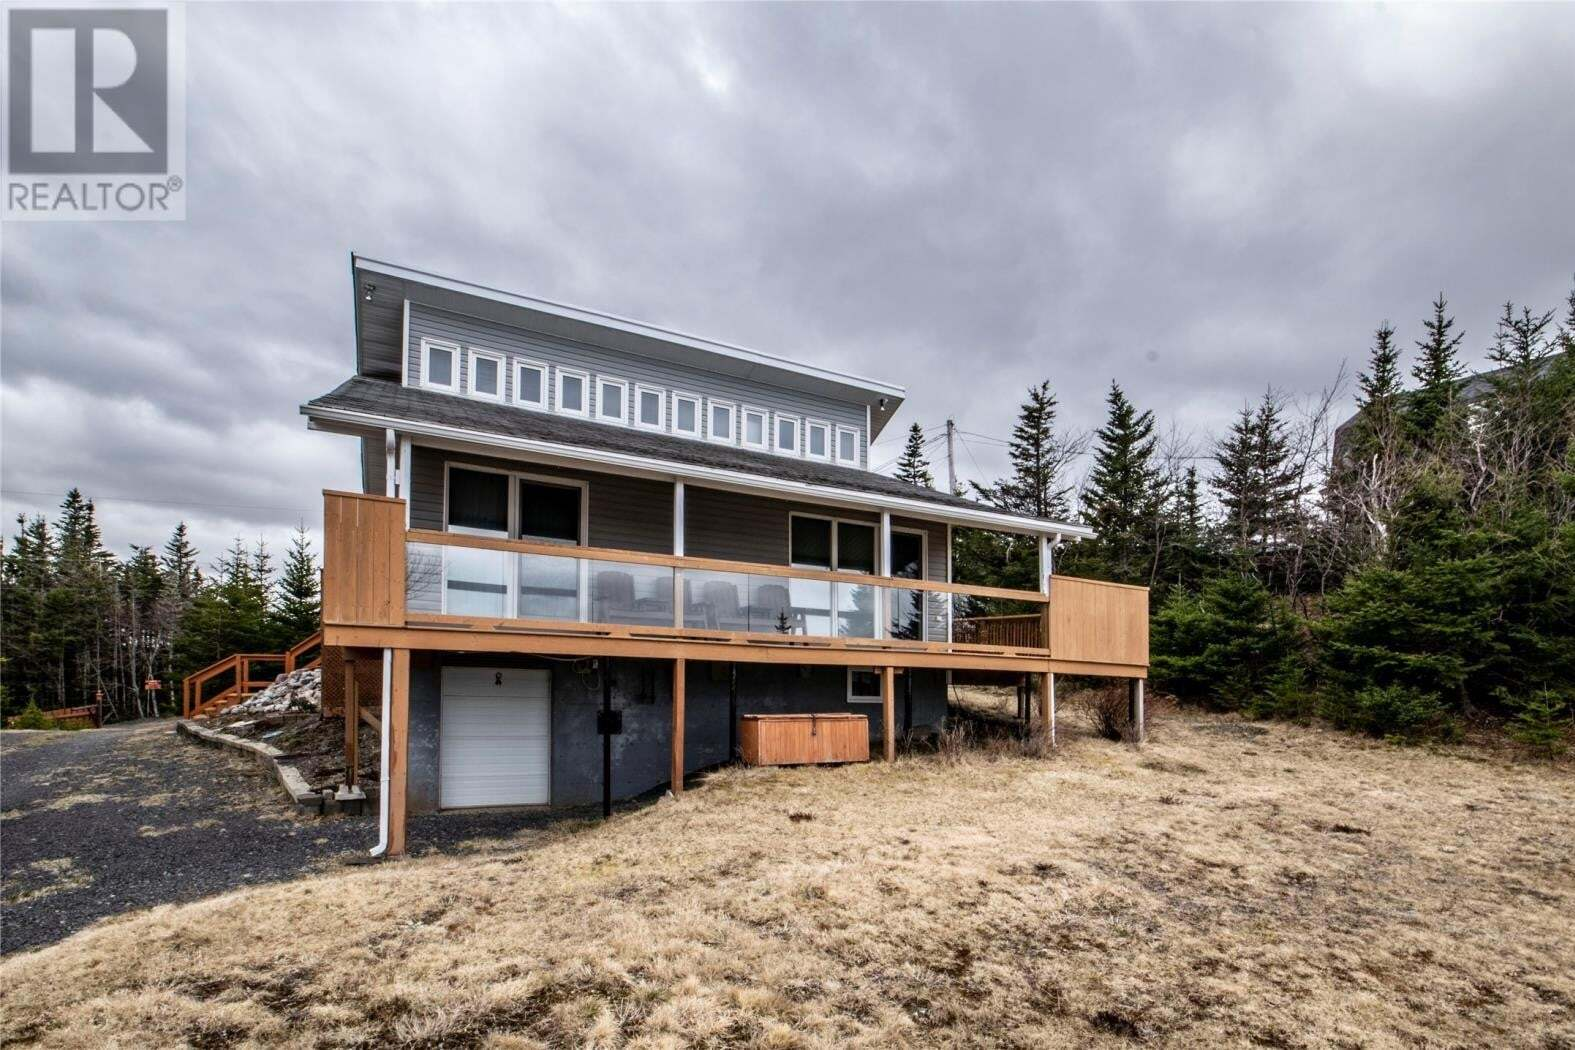 Residential property for sale at 57 Vokeys Rd Whitbourne Newfoundland - MLS: 1214407